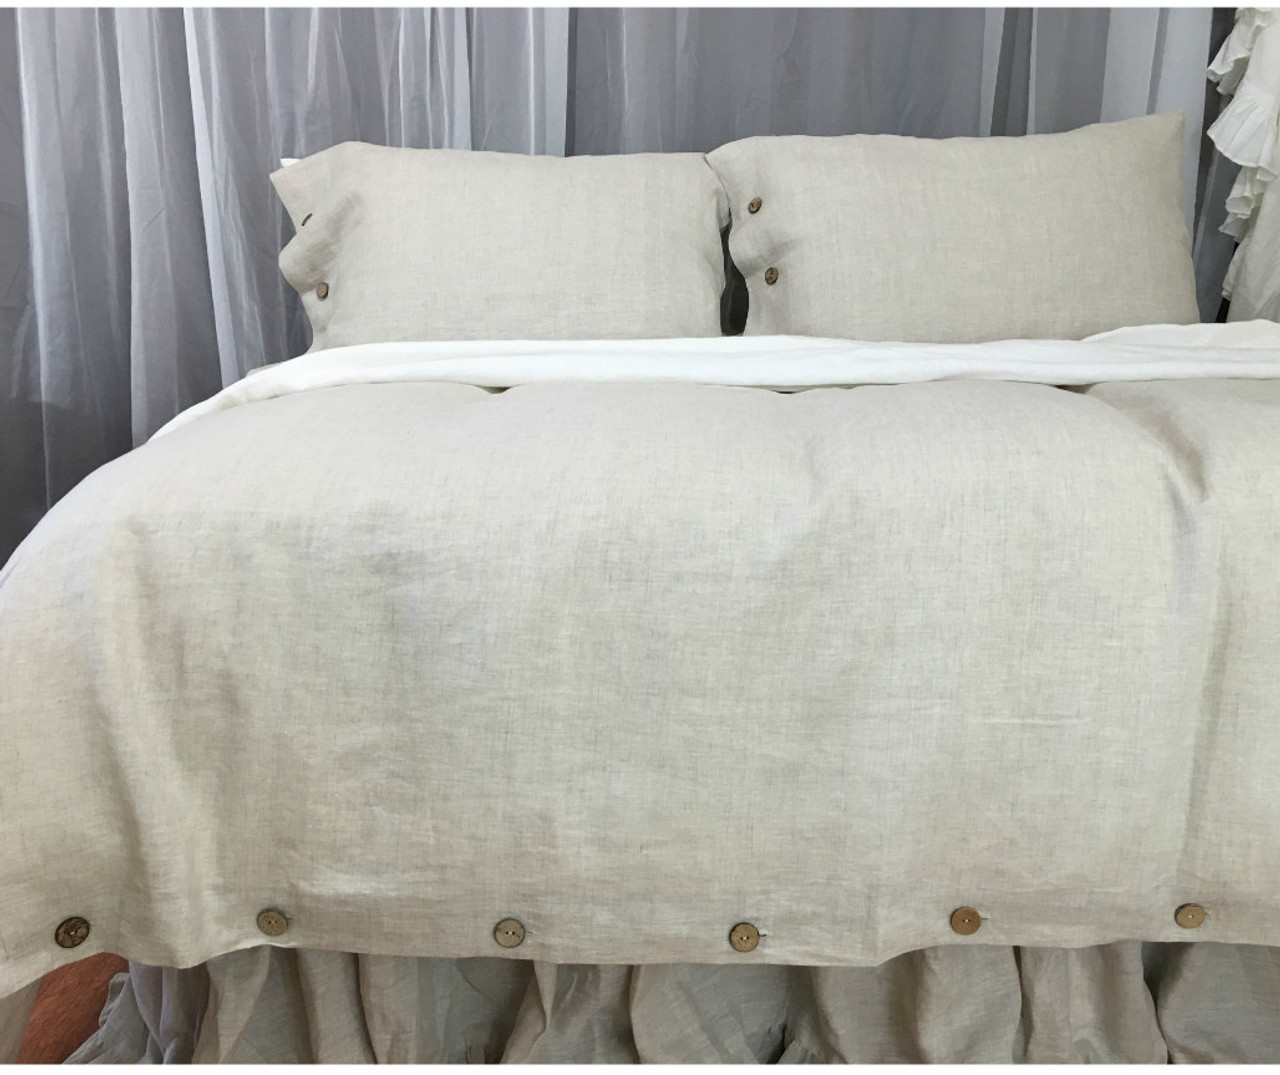 Natural Linen Duvet Cover With Wooden Buttons Custom Size Queen King Calif King Twin